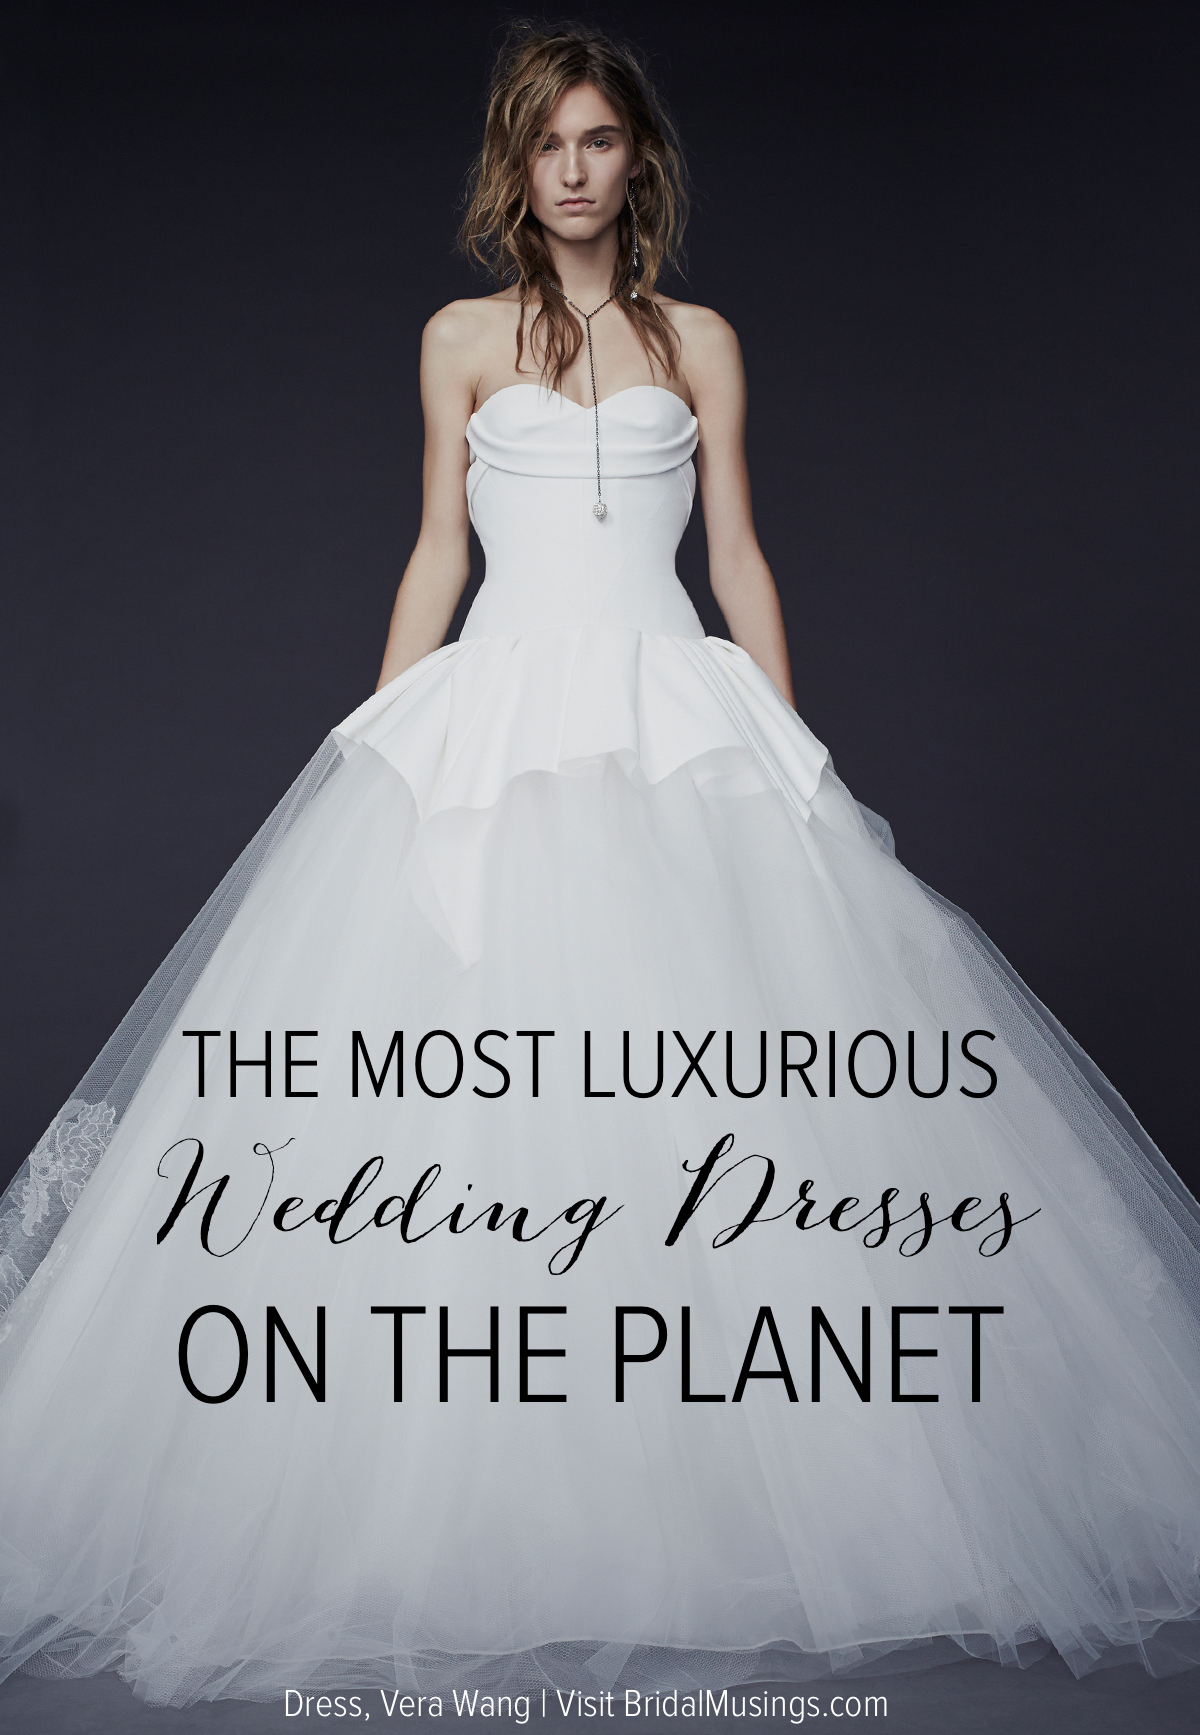 vera wang wedding dress bridal musings wedding blog